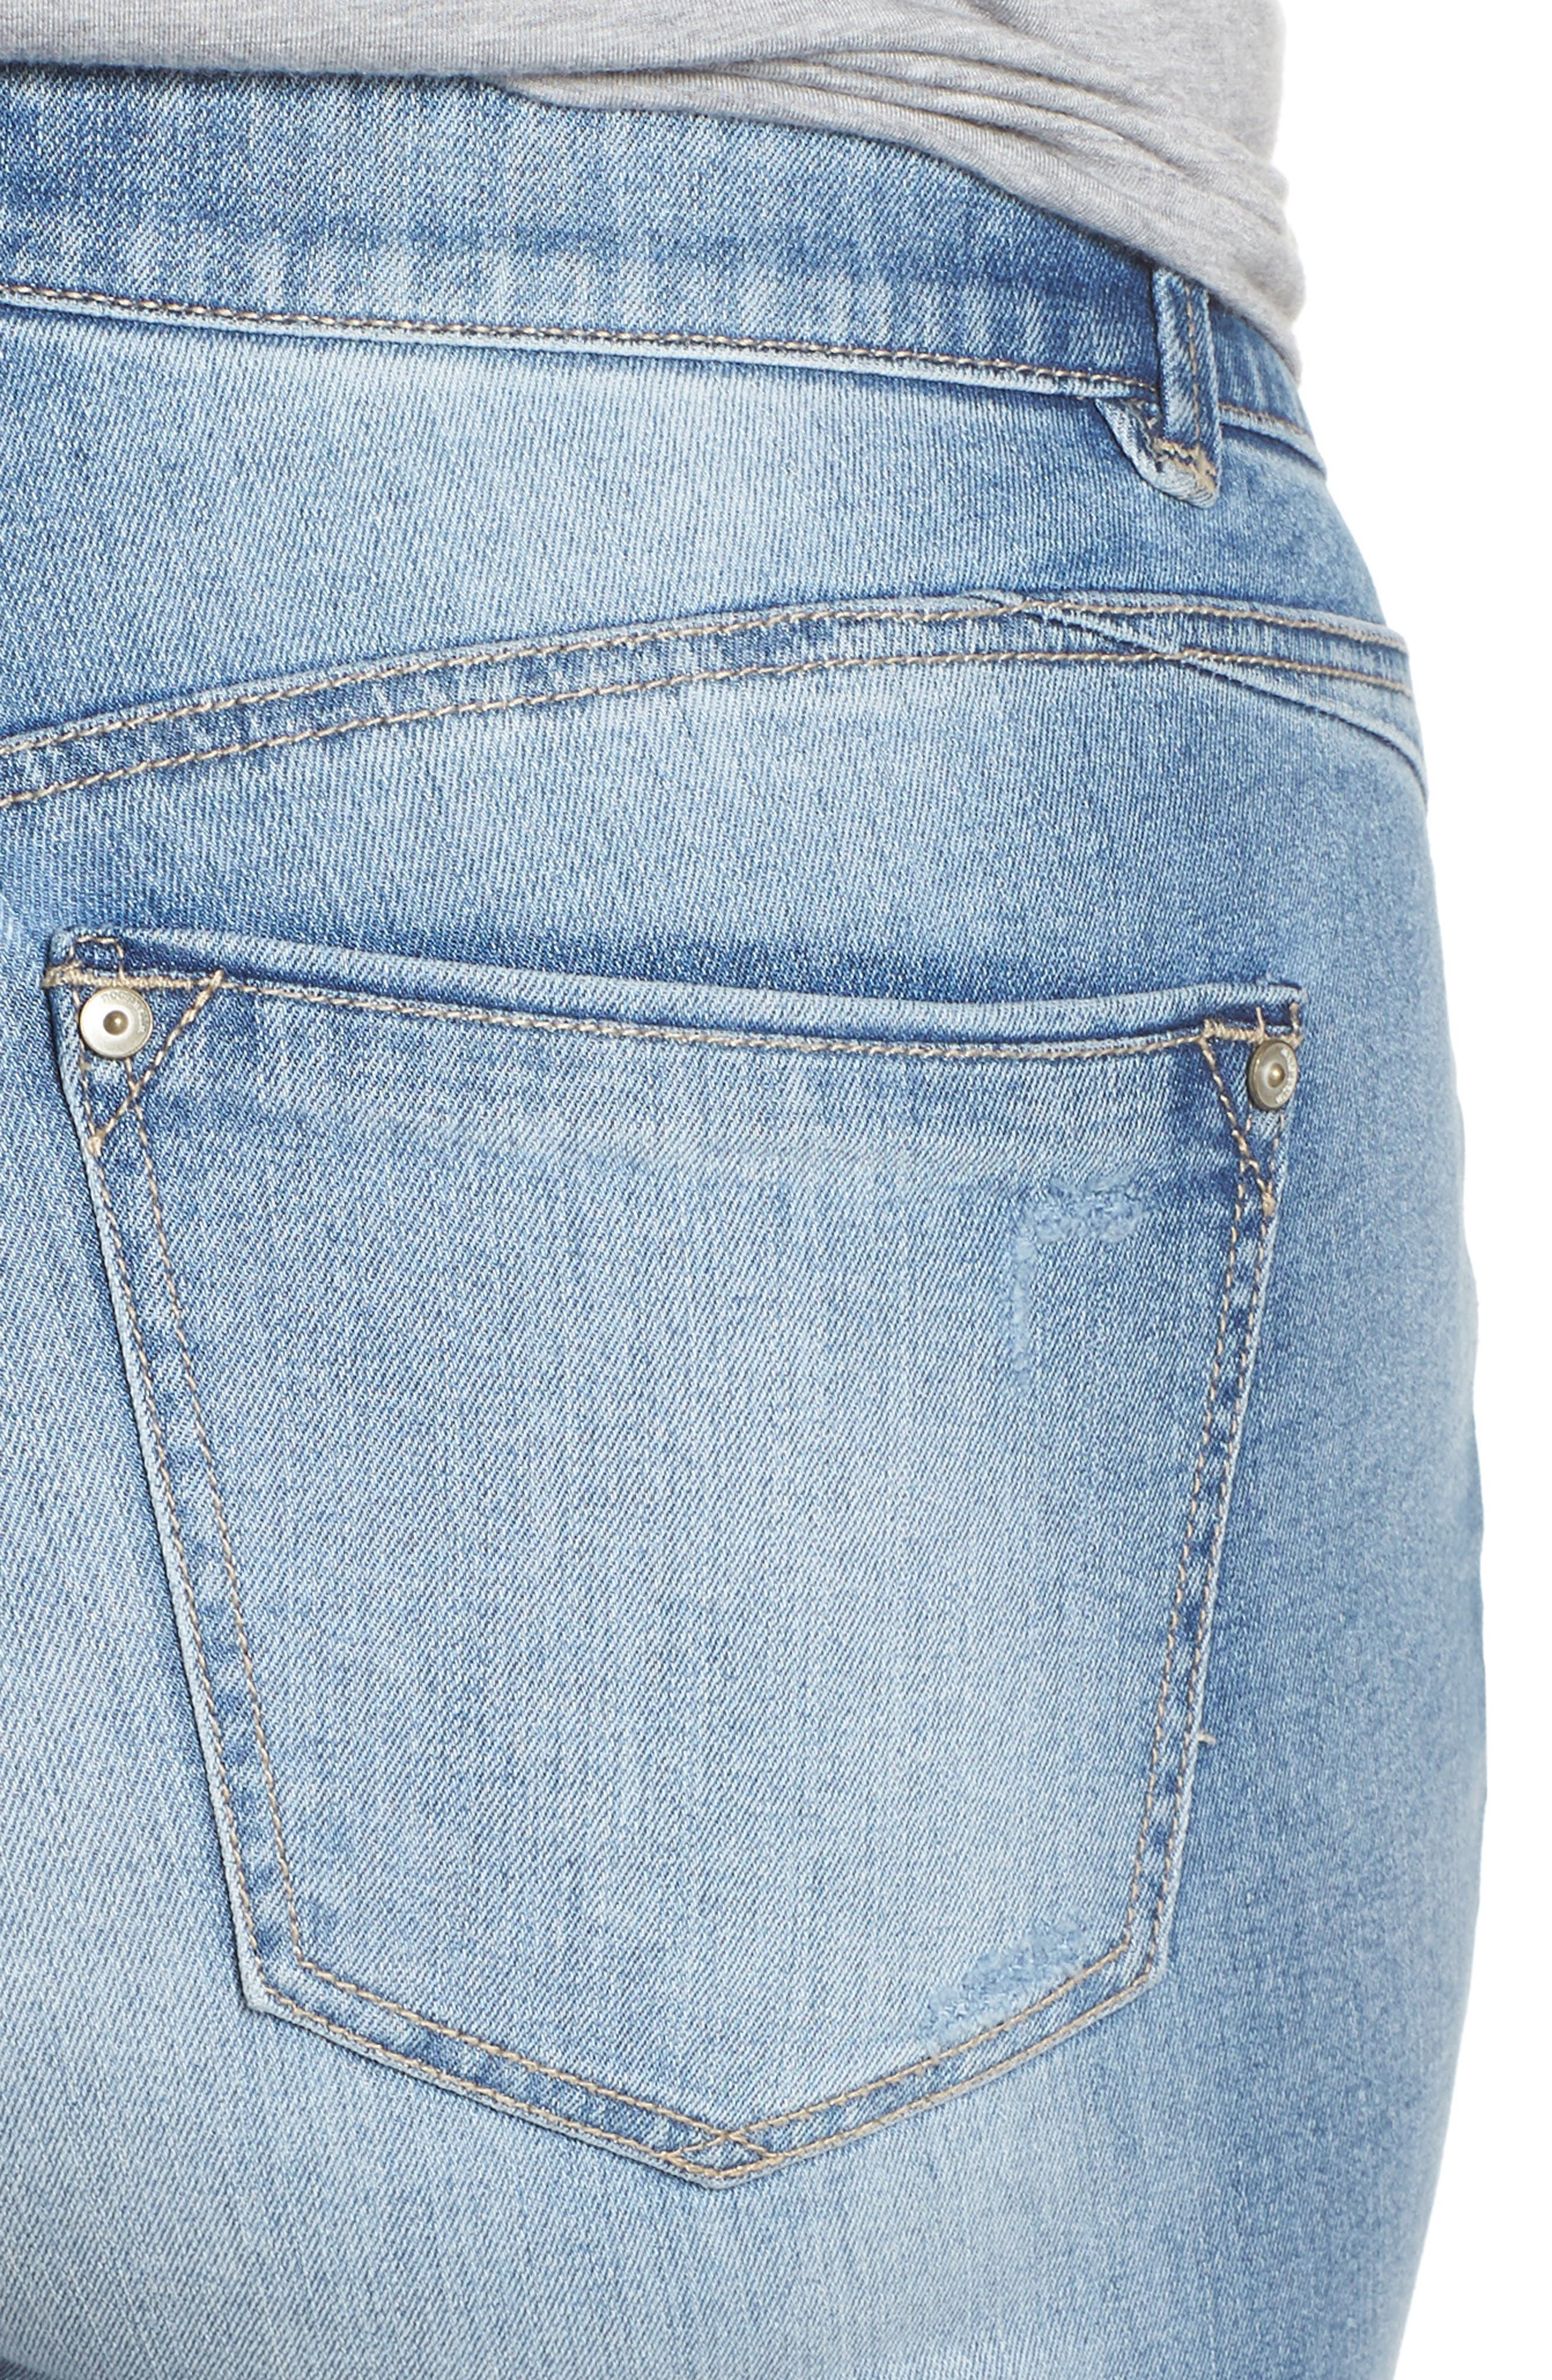 Ab-solution Cuffed Denim Shorts,                             Alternate thumbnail 4, color,                             458